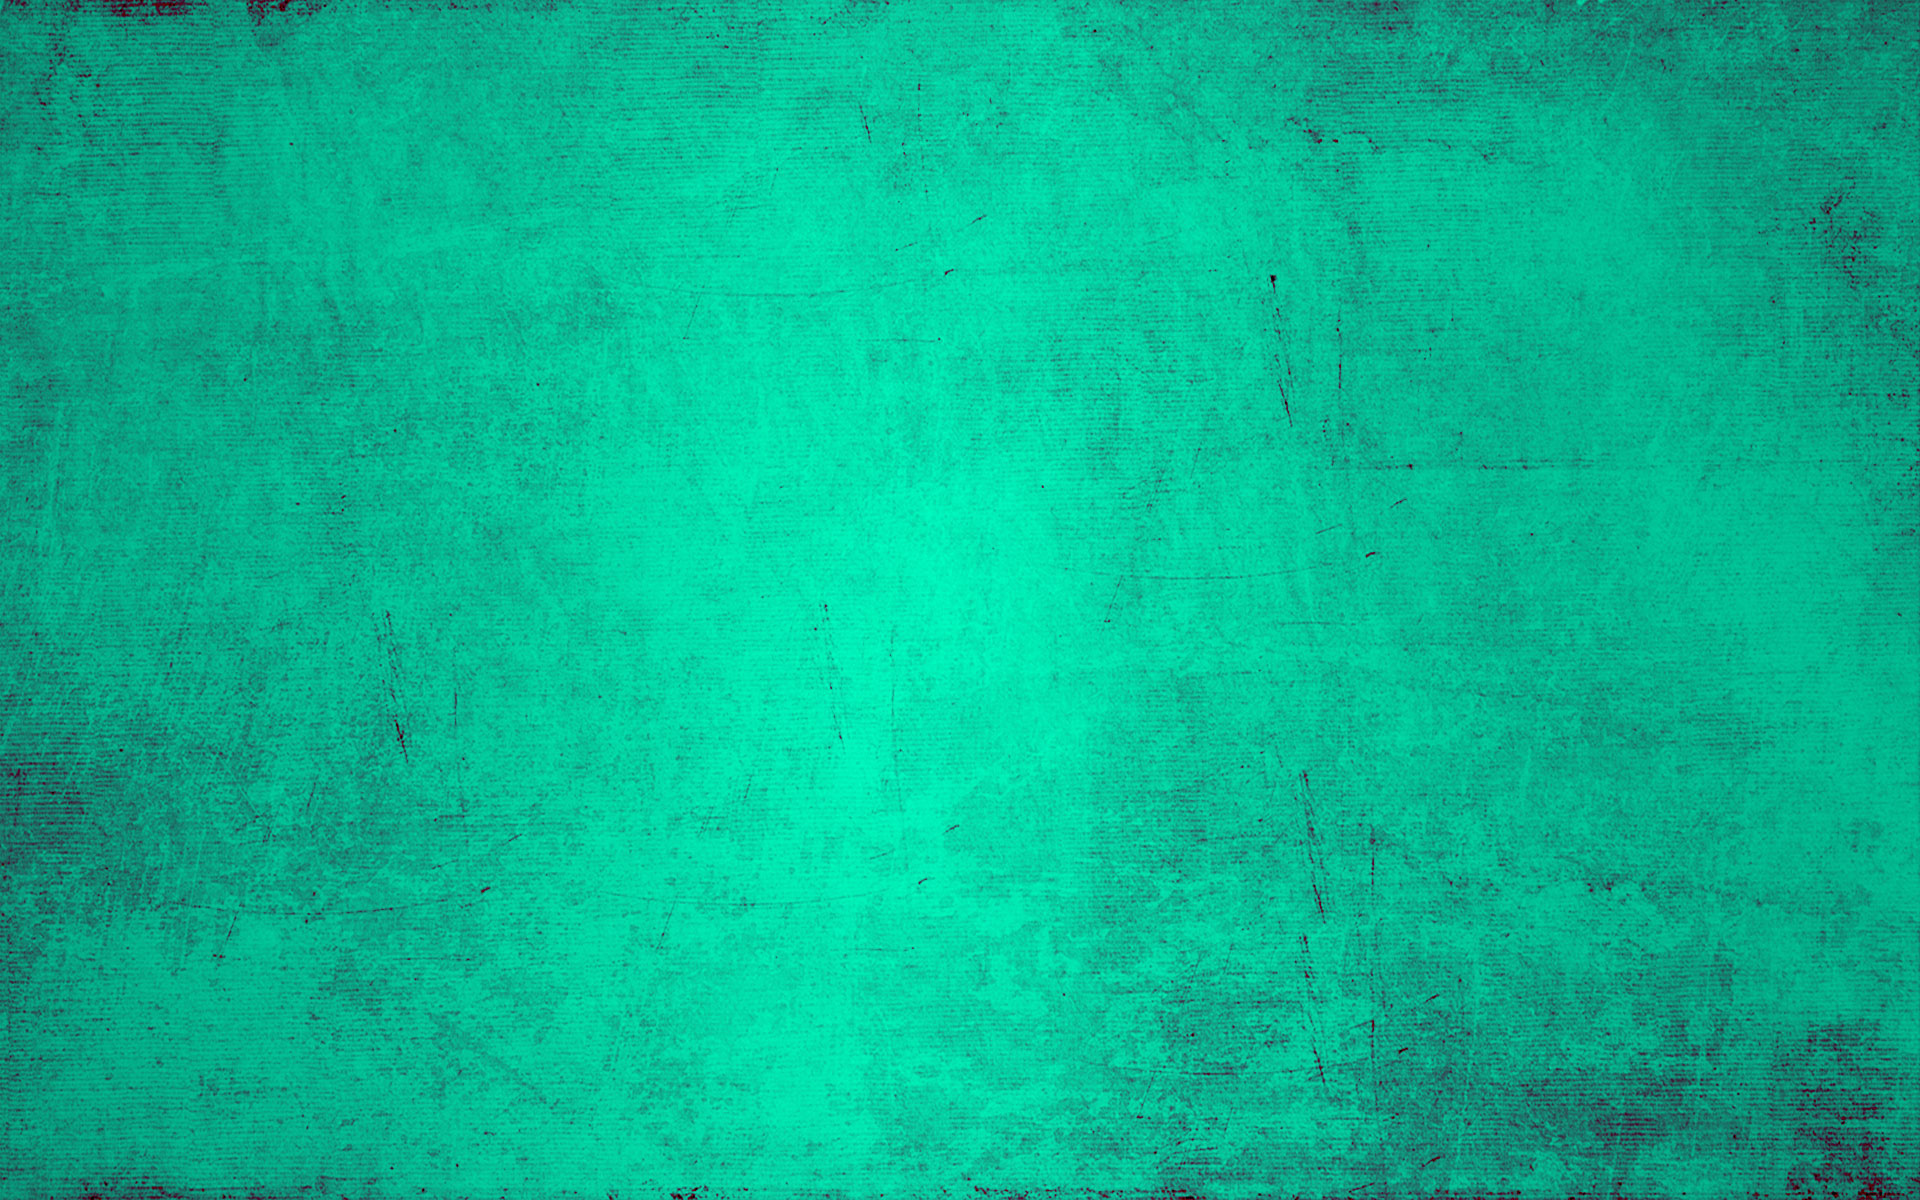 Turquoise texture wallpaper 890224 - Green and turquoise wallpaper ...